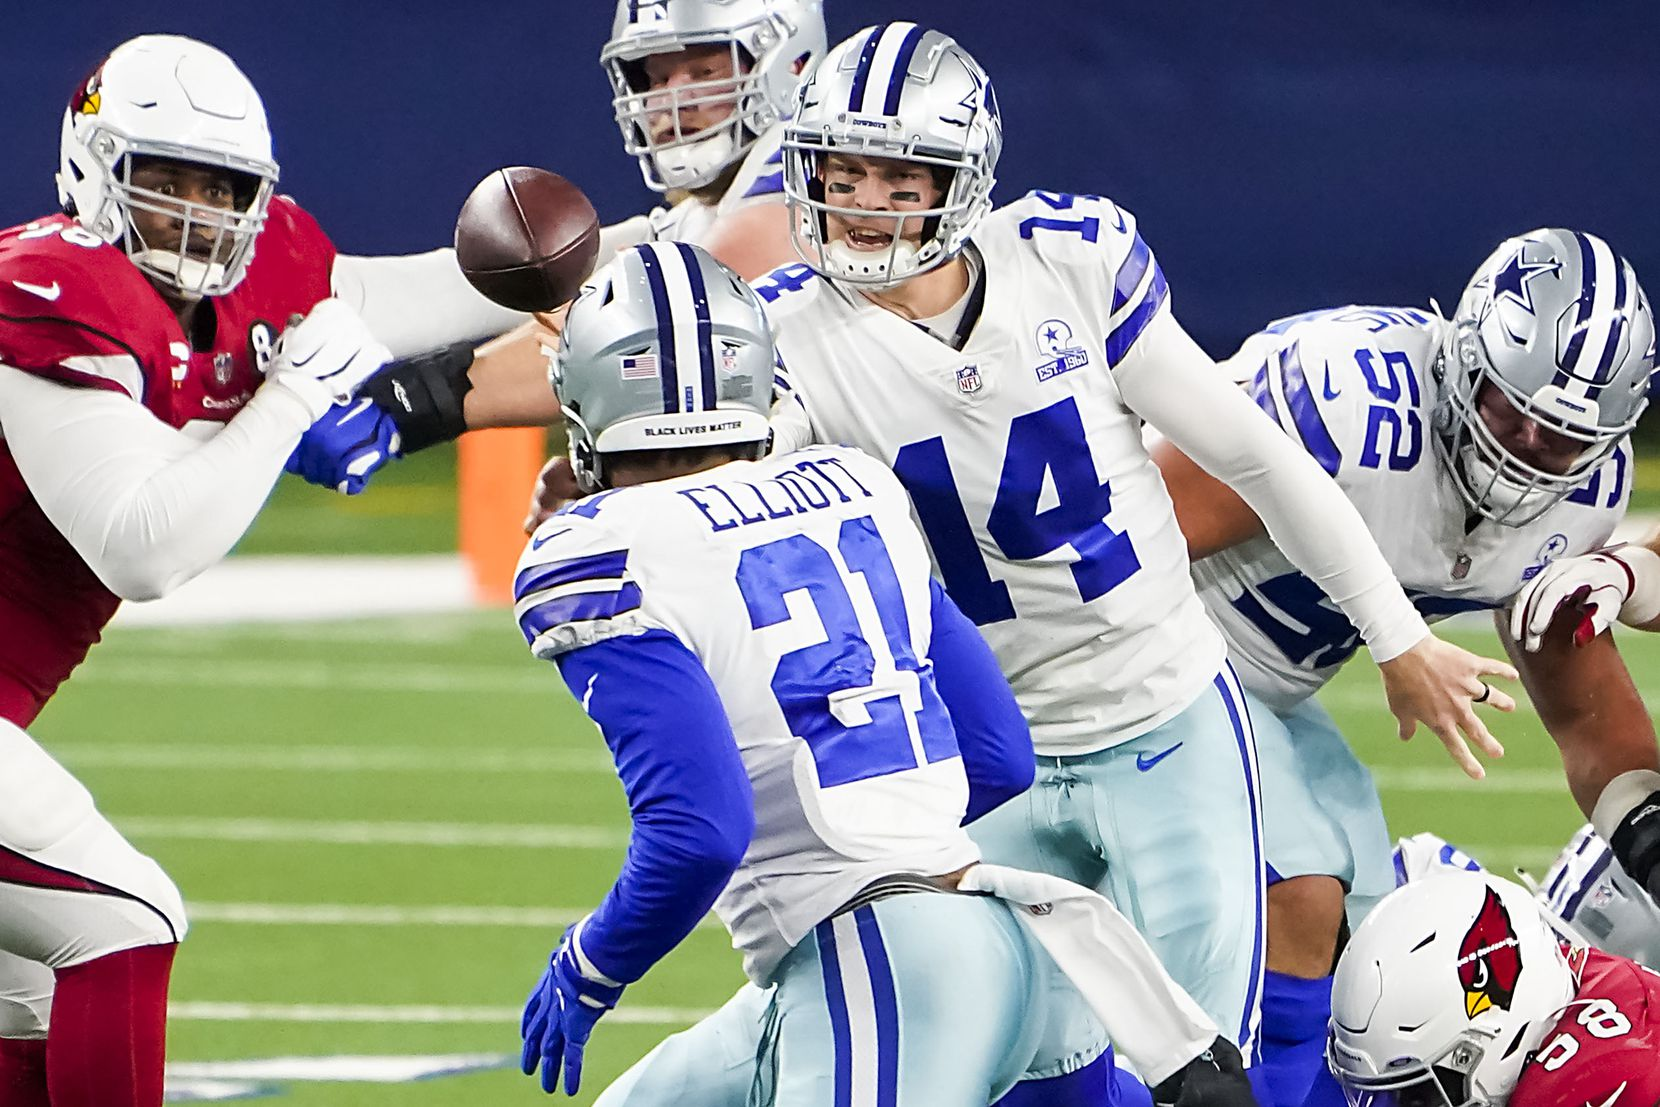 Dallas Cowboys quarterback Andy Dalton (14) gets off a shuffle pass to running back Ezekiel Elliott (21) during the first quarter of an NFL football game against the Arizona Cardinals at AT&T Stadium on Monday, Oct. 19, 2020, in Arlington. (Smiley N. Pool/The Dallas Morning News)